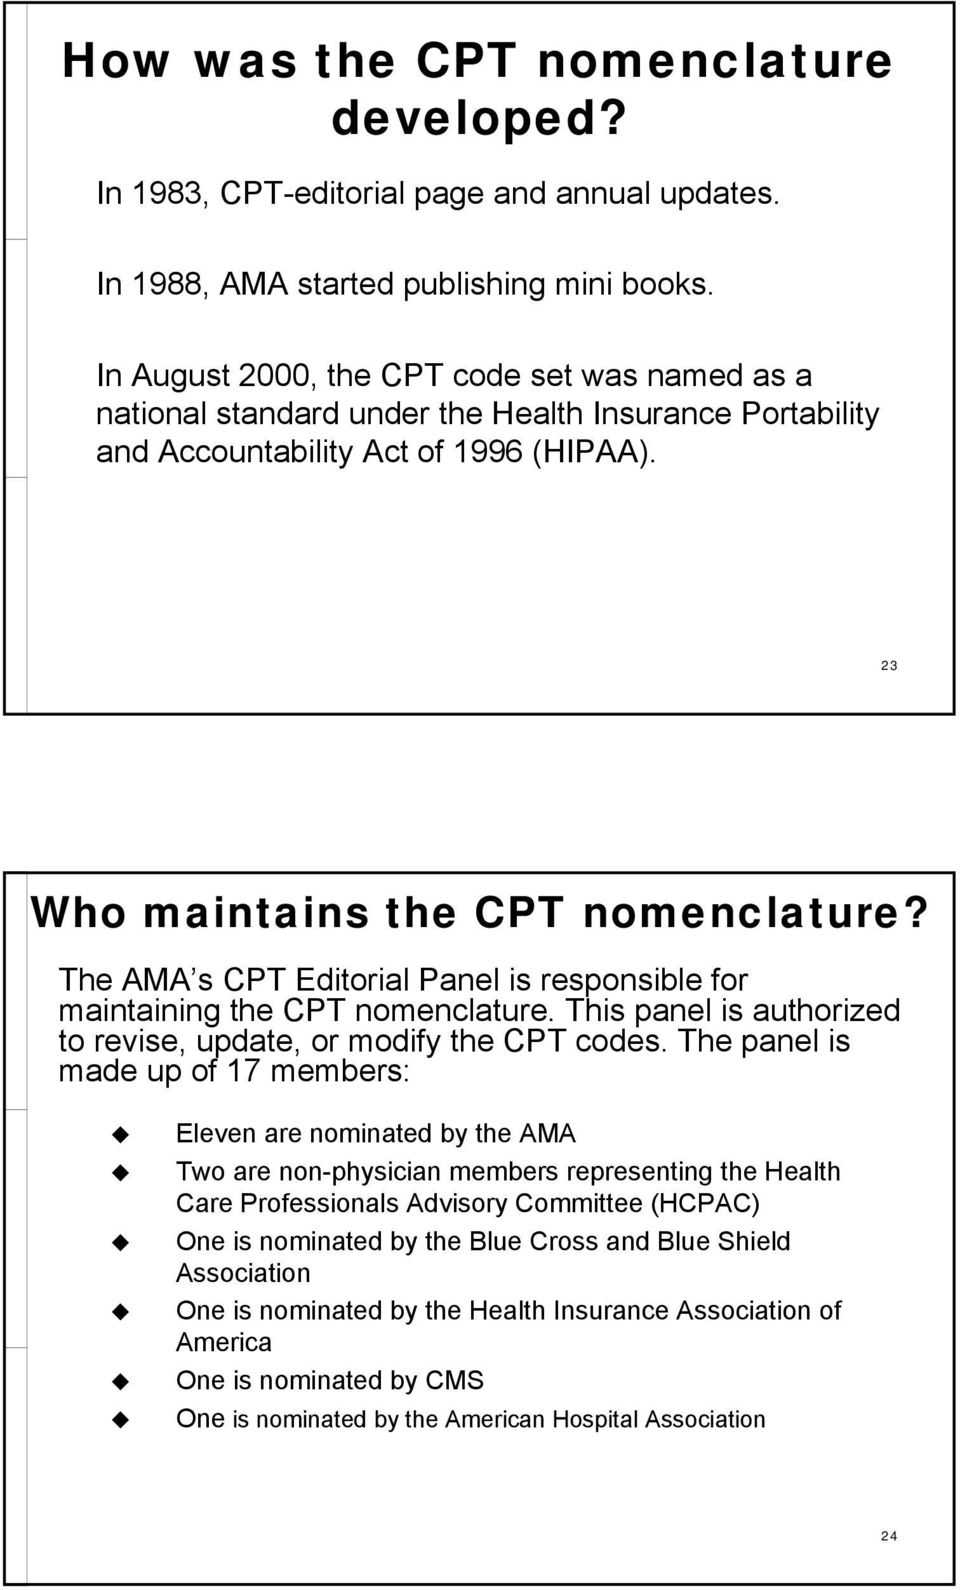 The AMA s CPT Editorial Panel is responsible for maintaining the CPT nomenclature. This panel is authorized to revise, update, or modify the CPT codes.